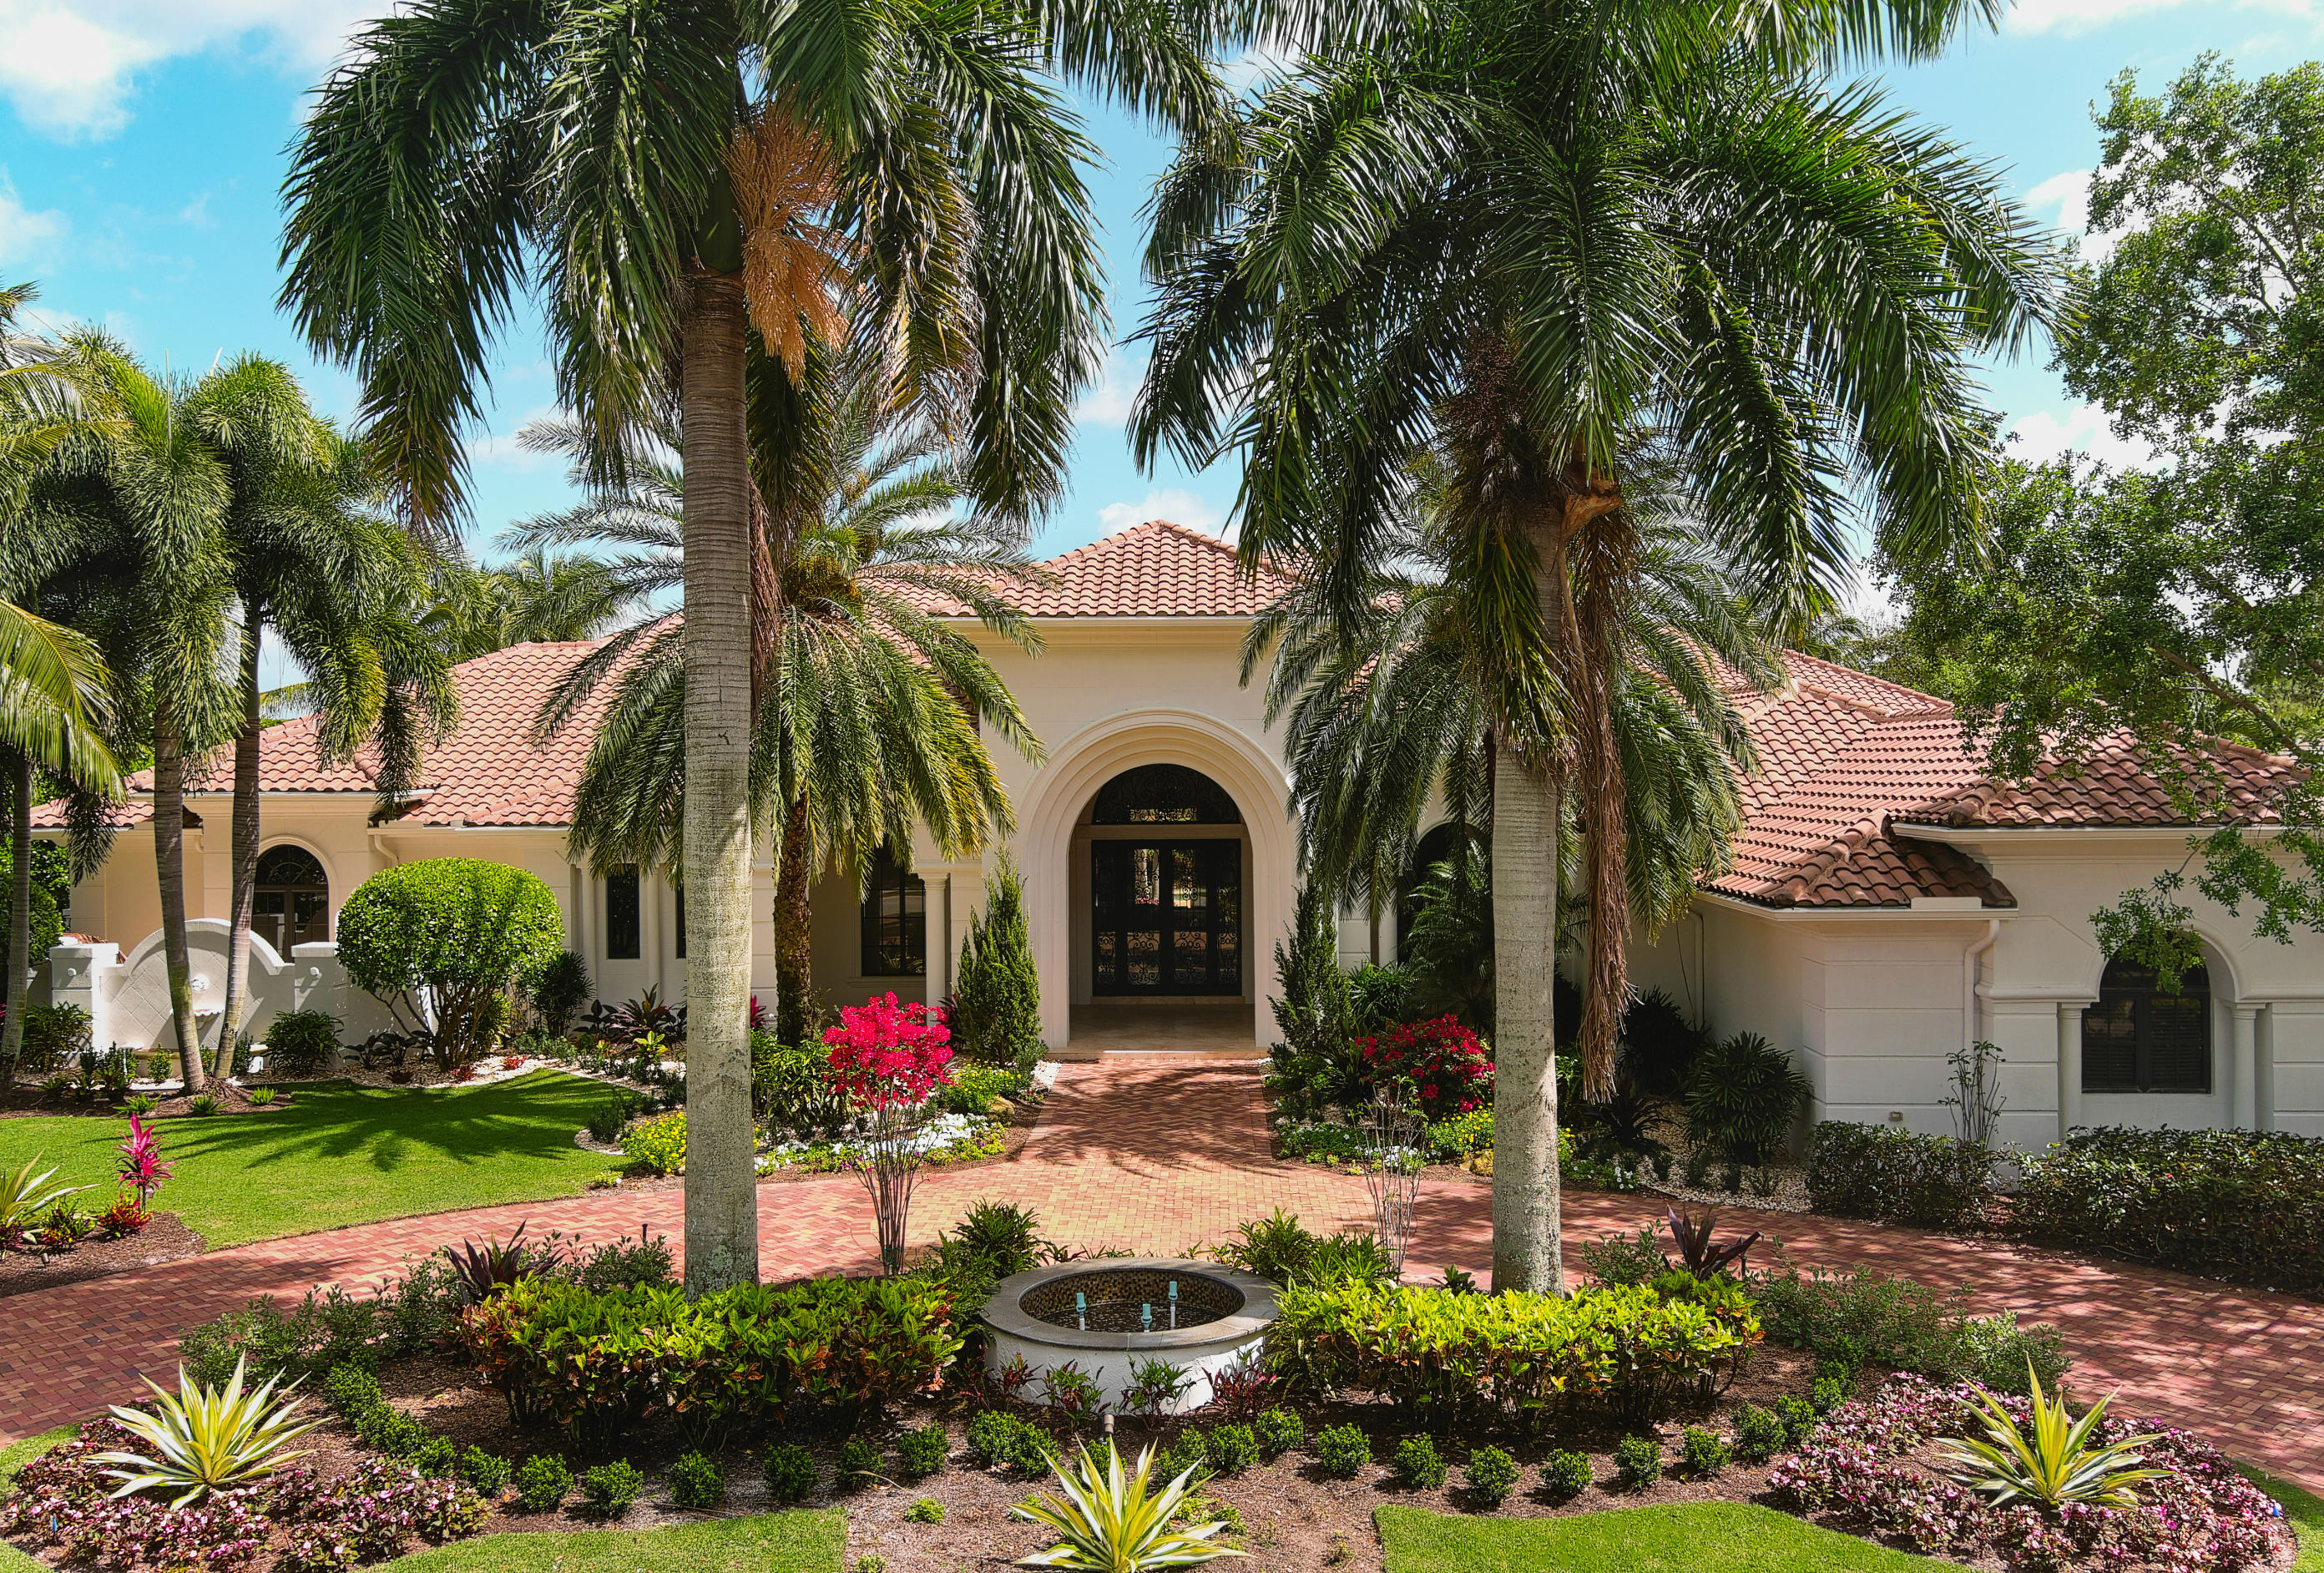 This magnificent, recently renovated 8, 234 sq. ft of living space home is not to be missed. Located on a very private acre lot with the best views of the lake and the fairway of the Par 5, 12th hole at Old Palm. Freshly painted inside and out, complete hurricane impact windows and doors and full house generator. This master bath has been fully reimagined with His/Hers separate baths and closets and gorgeous new countertops finished in a beautiful white/blue quartzite. New flooring throughout the home in a light ceramic tile. Kitchen has gorgeous custom cabinetry with calcite and quartzite countertops and eye catching cobalt blue island. The Butler's Pantry is finished in the same cobalt blue and is simply spectacular. Large formal and informal gathering areas including club room and spectacular home theatre leave plenty of space to gather with friends and entertain. 4 ensuite bathrooms, laundry/ pantry complete this home. 5 car garage plus golf cart off of driveway with large circular driveway in front of home - perfect for guest parking. This is one of the best offerings available in Old Palm today!